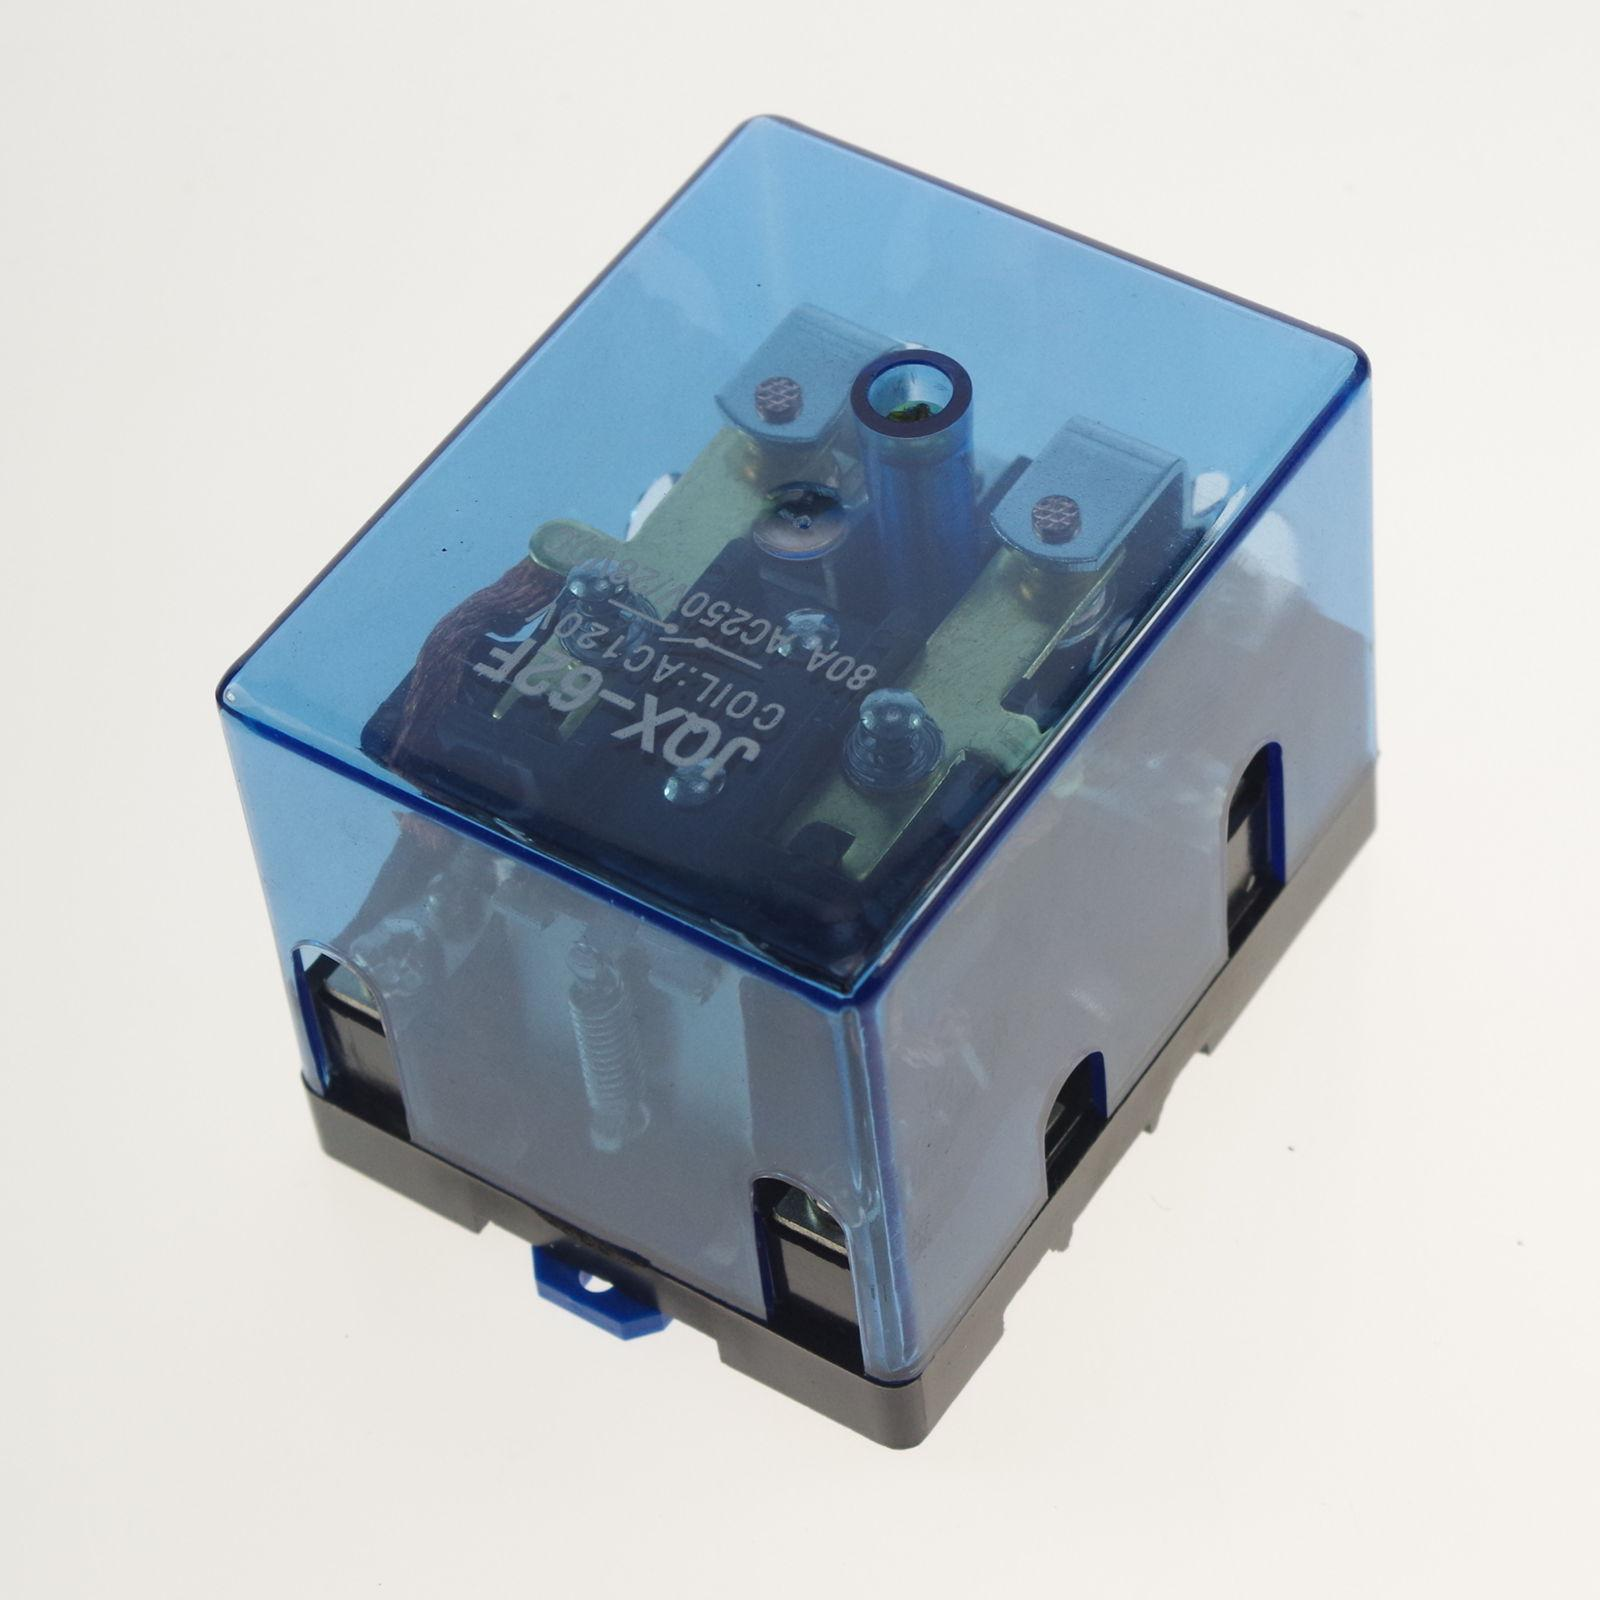 12vdc 110vac 220vac 80a 2z Dpdt Power Relay Motor Control Screw Mount In Relays From Home Improvement On Alibaba Group